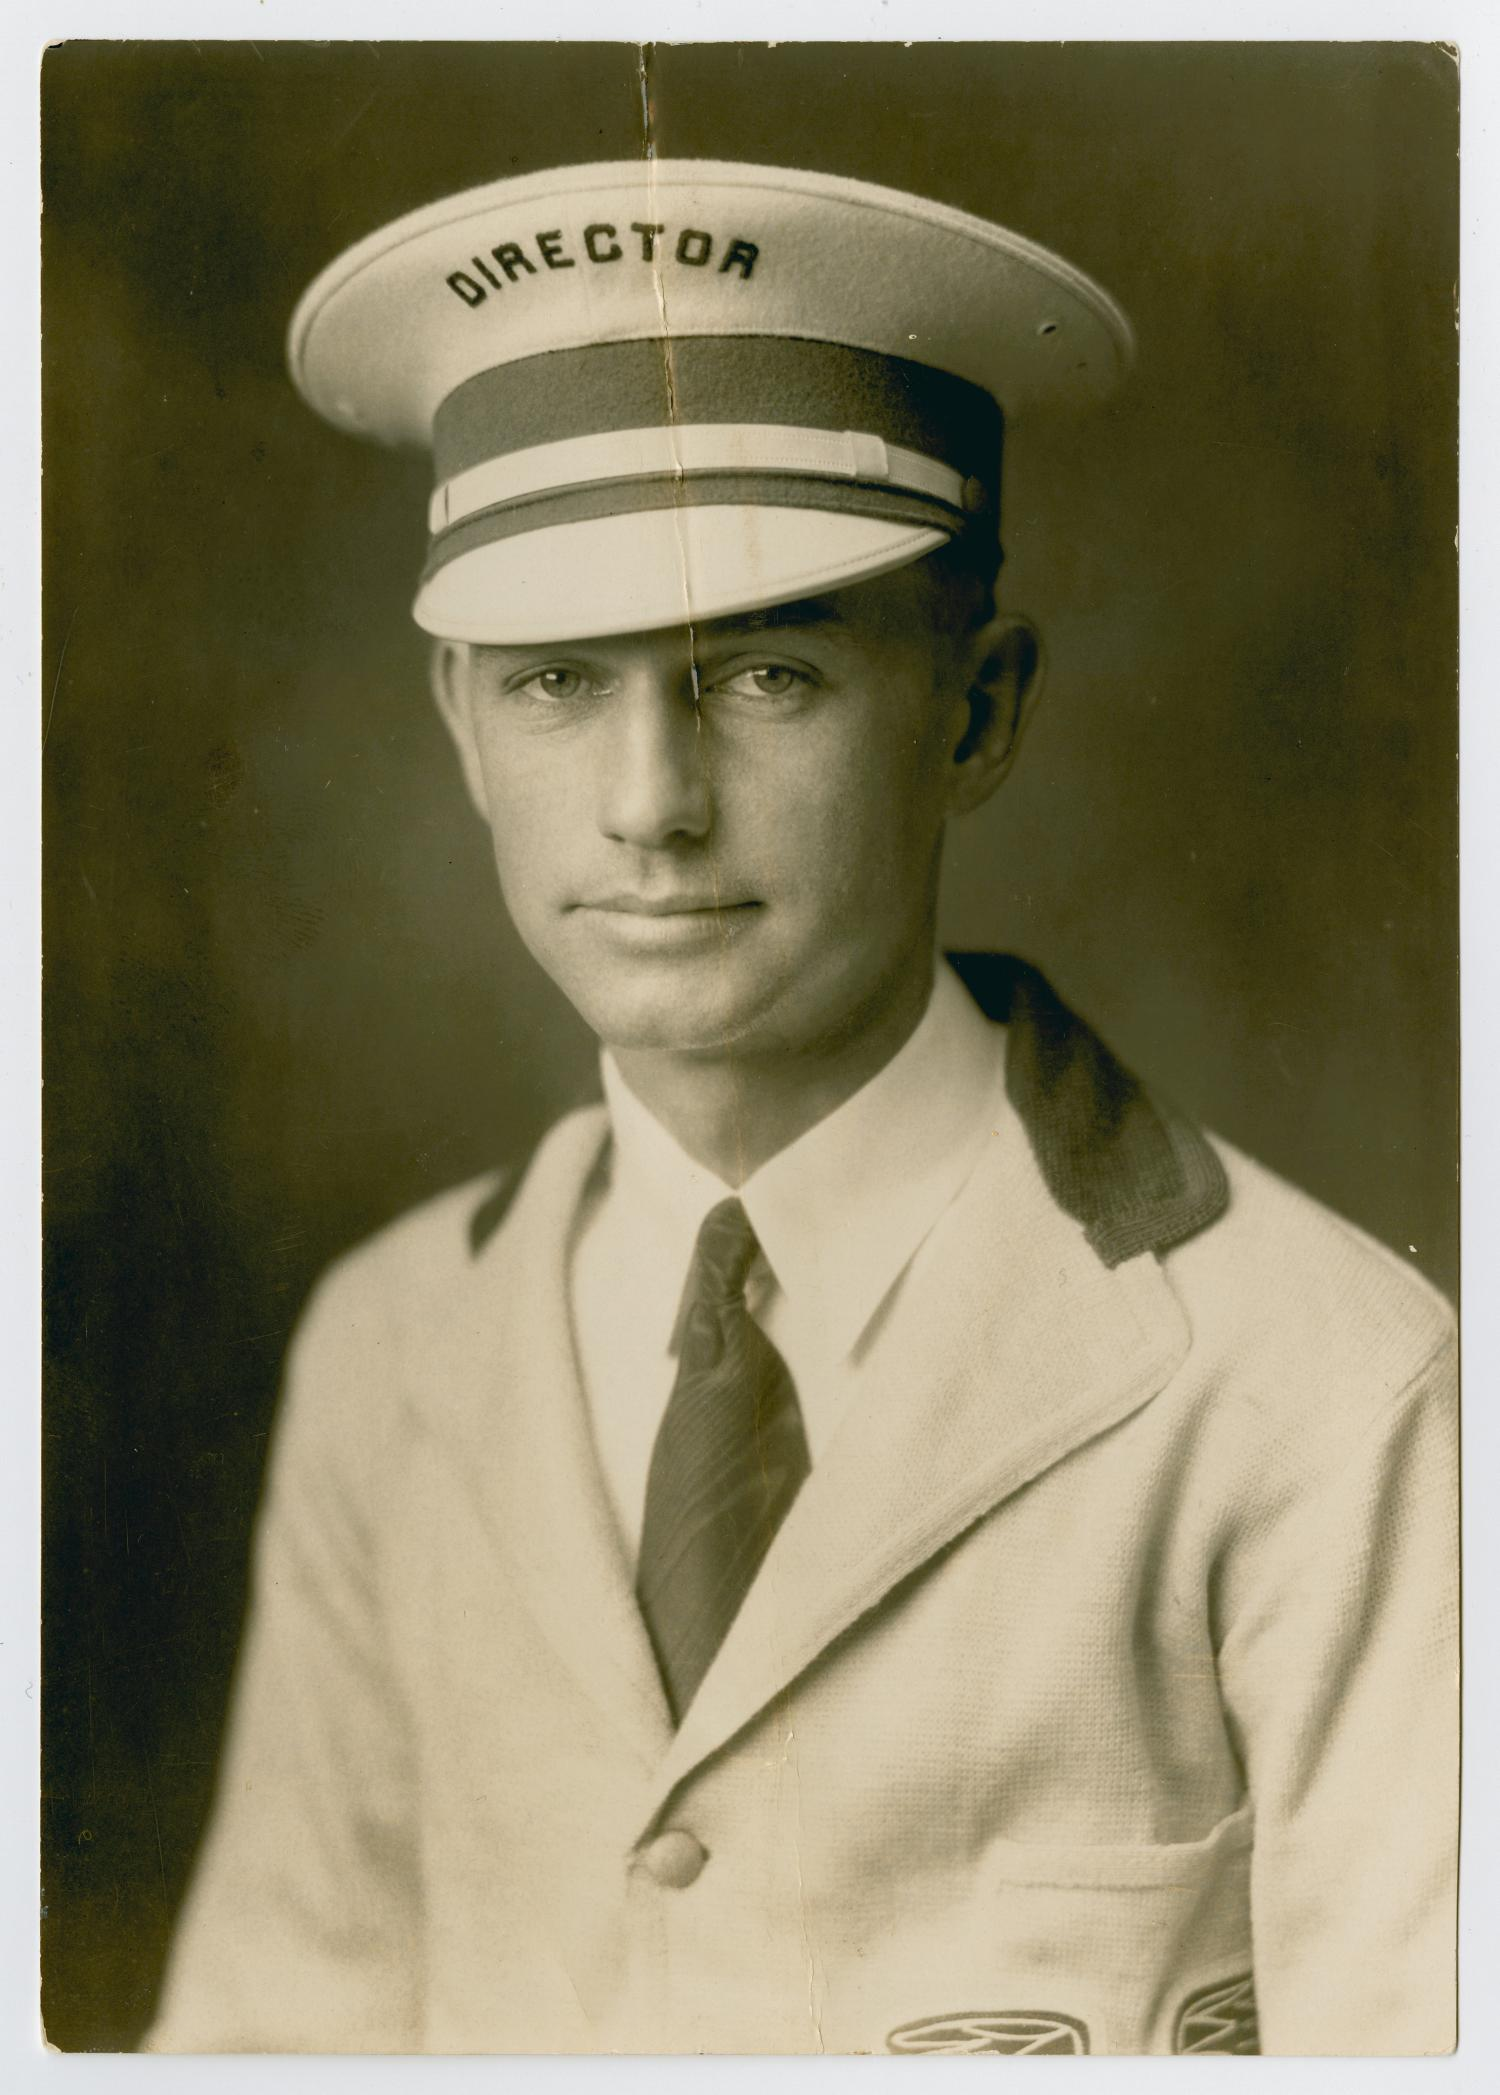 Black and white bust length portrait of a white man wearing a light colored suit jacket over a collared shirt and tie. He wears a light colored military style hat with brim in front, and across the top it reads 'Director.'